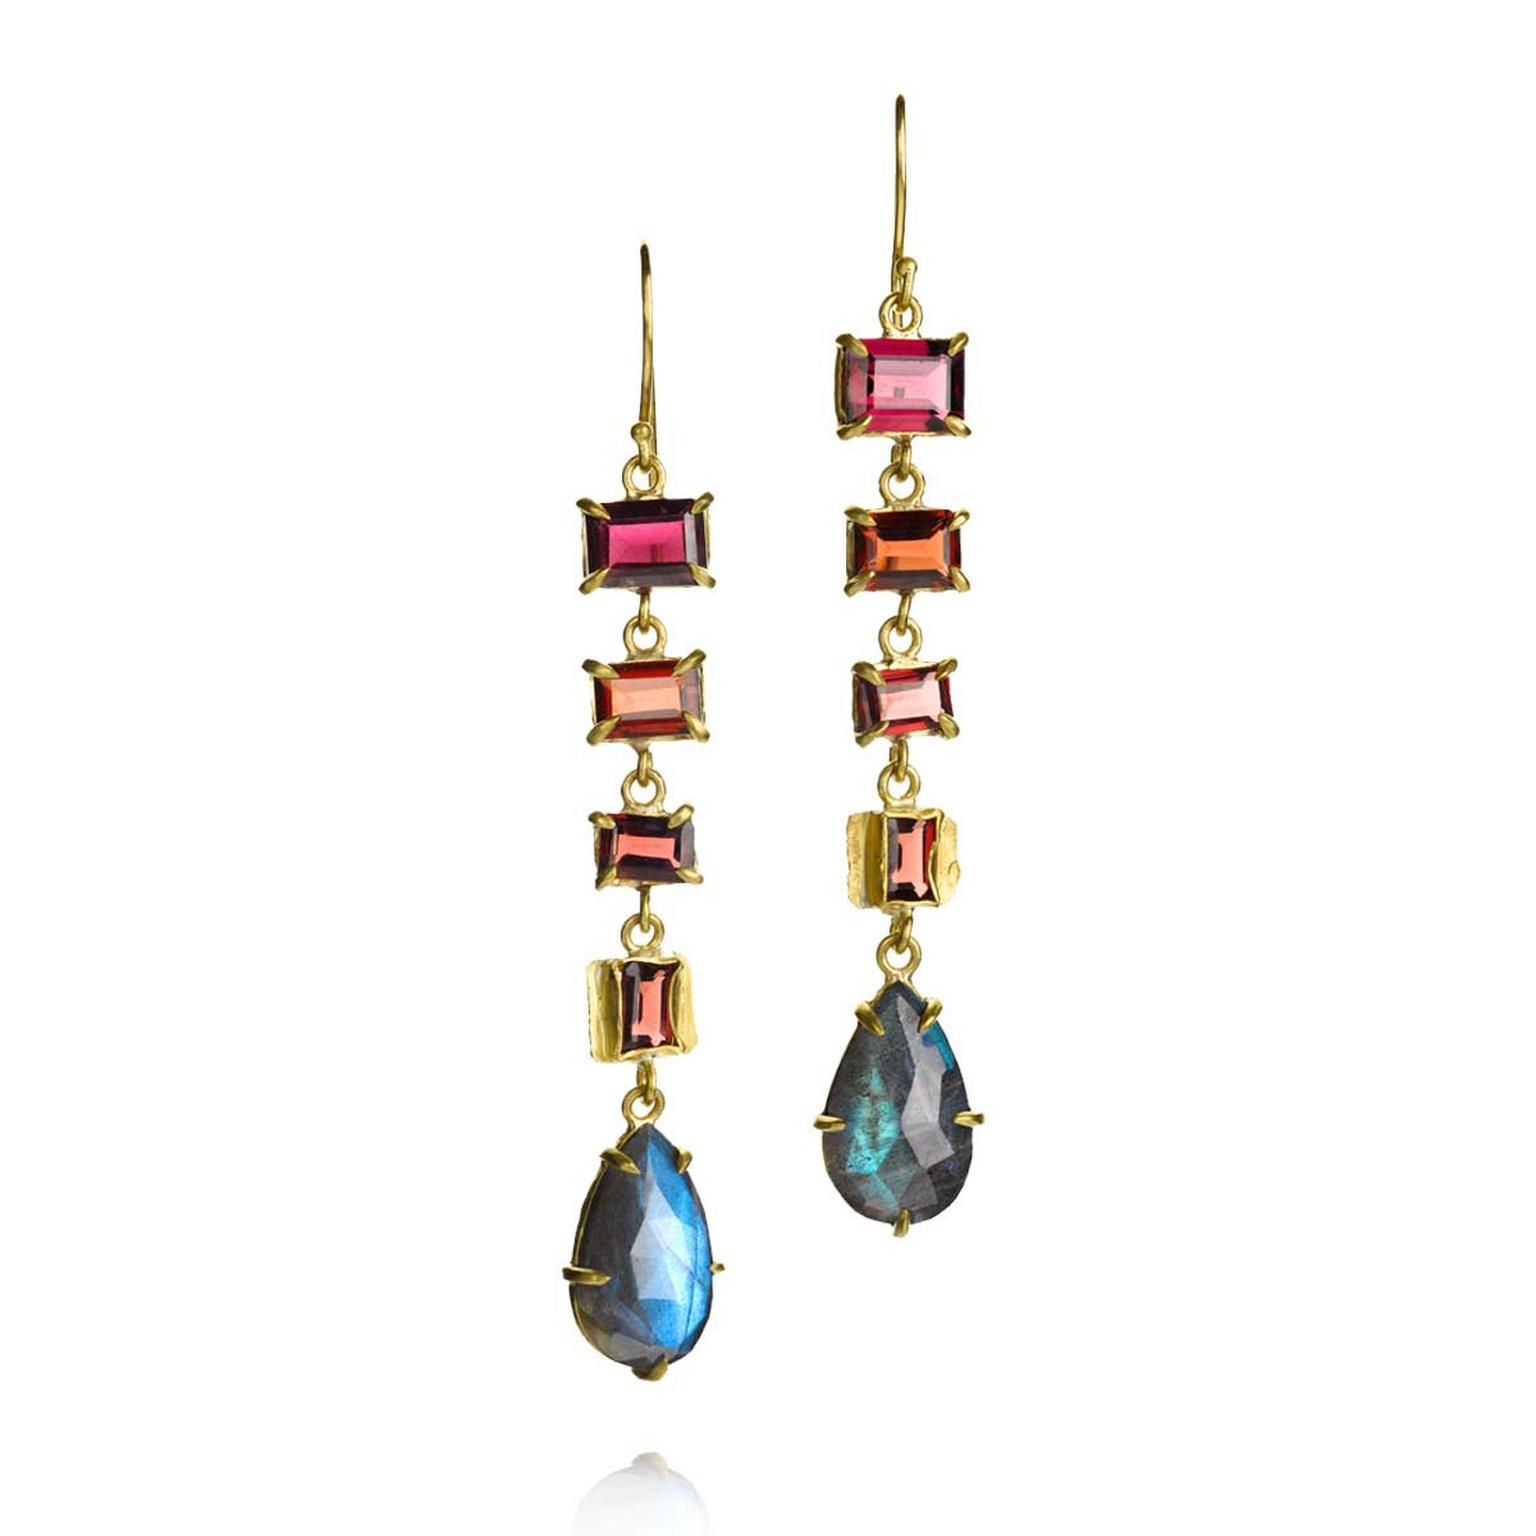 Margery Hirschey labradorite and rhodolite earrings